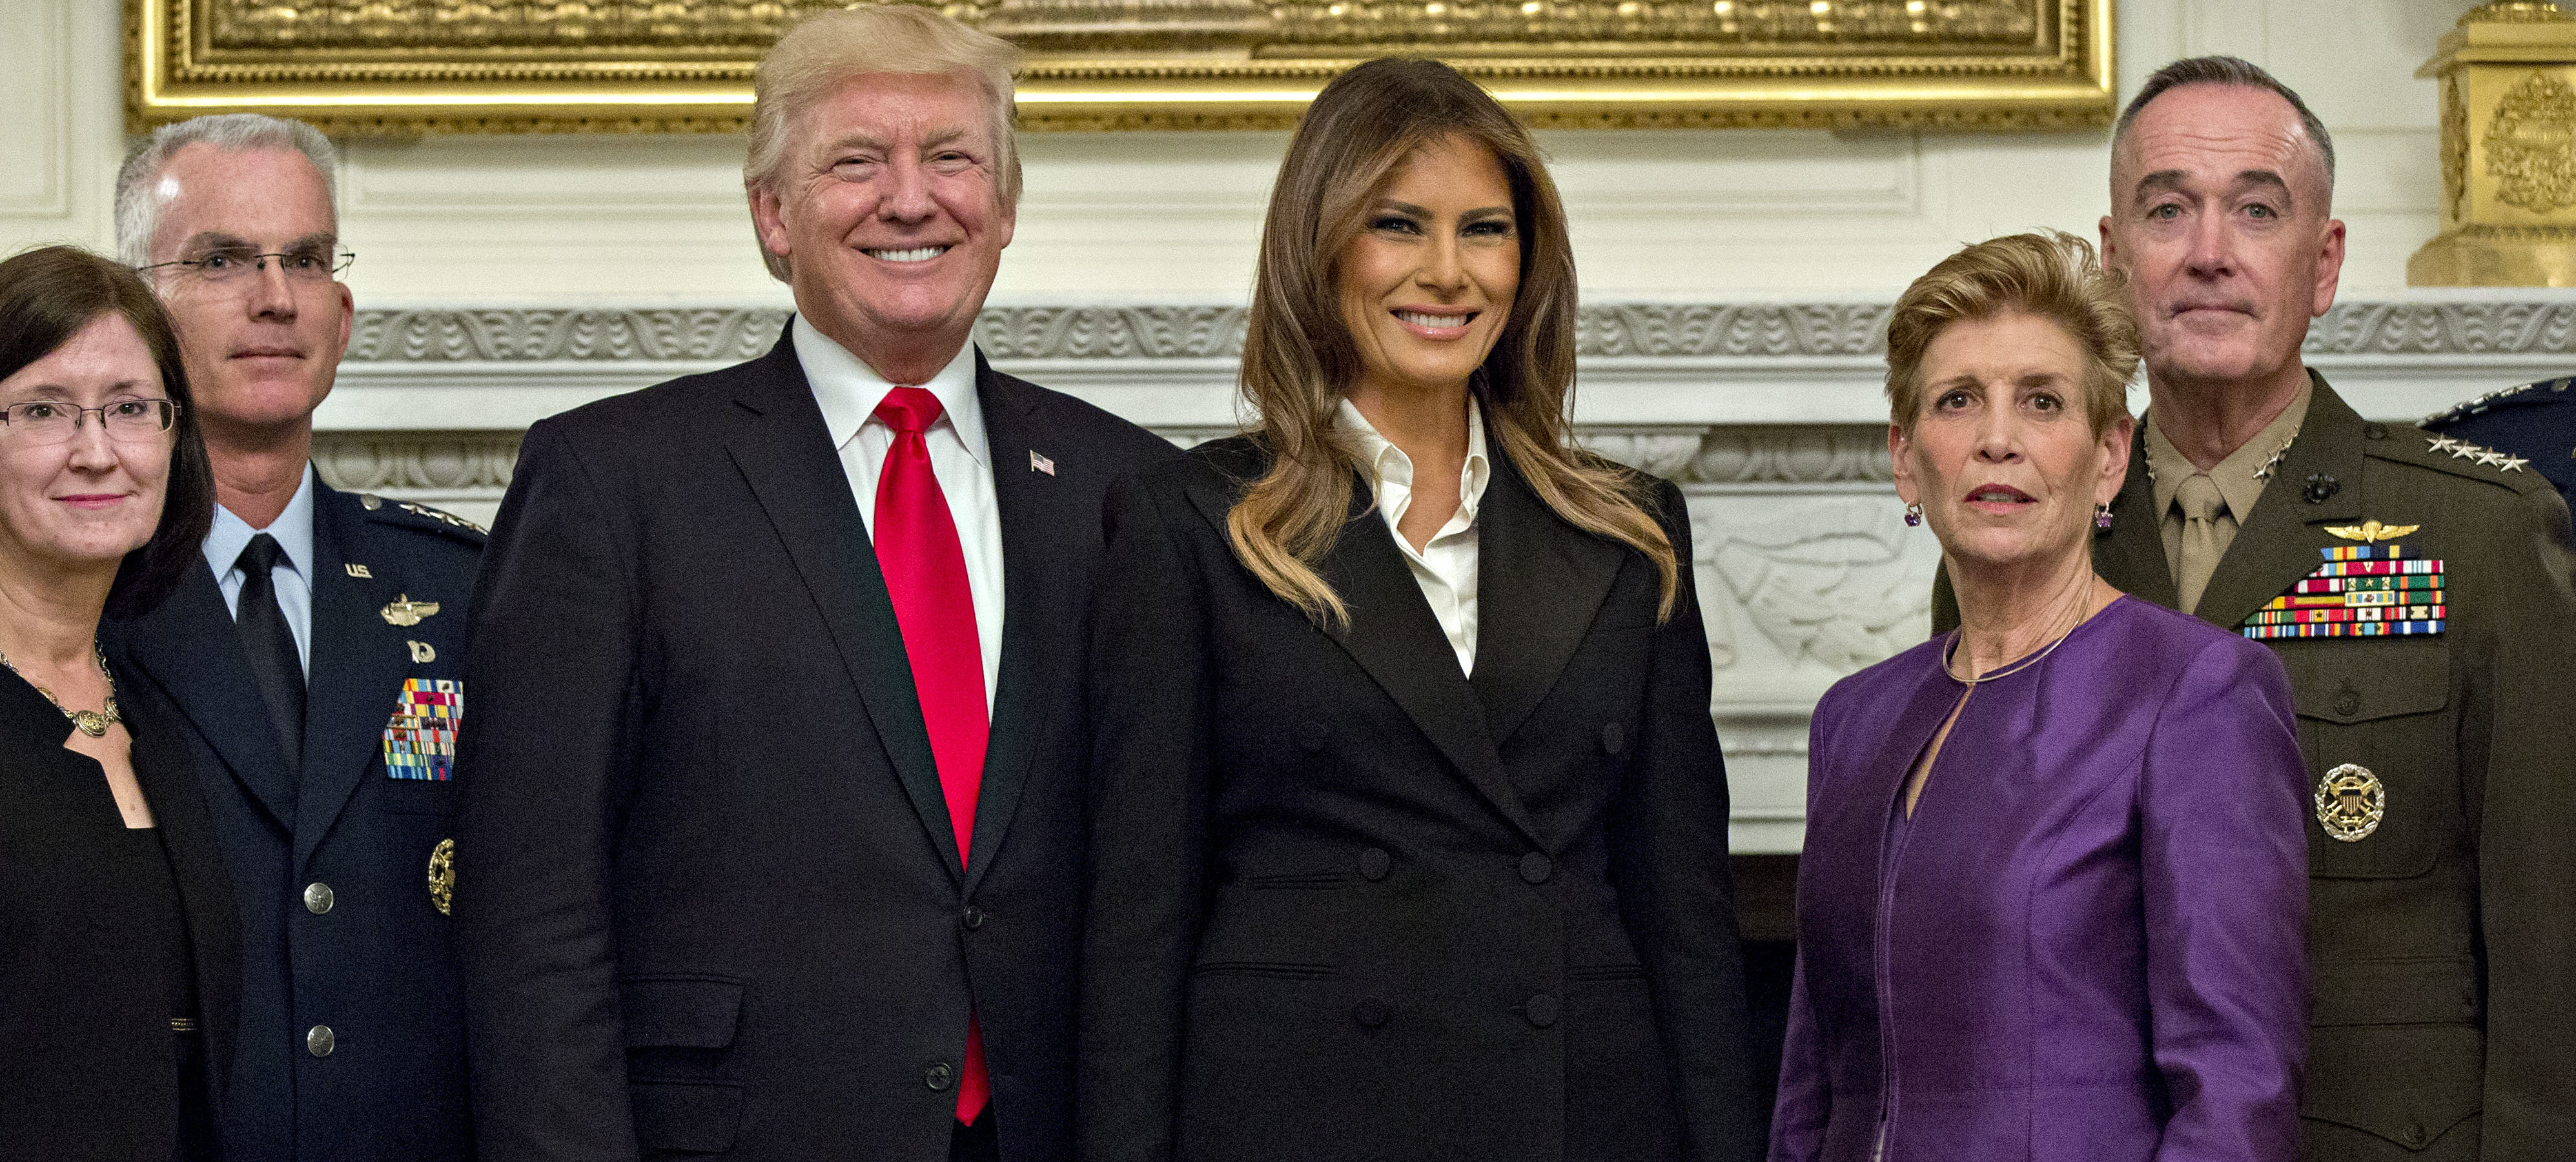 WASHINGTON, DC - OCTOBER 5:  U.S. President Donald Trump and first lady Melania Trump pose for pictures with senior military leaders and spouses, including including Gen. Joseph Dunford (R), chairman of the joint chiefs of staff, and General Paul Selva (2nd L), vice chairman of the joint chiefs of staff, after a briefing in the State Dining Room of the White House October 5, 2017 in Washington, D.C. The Trumps are hosting the group for a dinner in the Blue Room.  (Photo by Andrew Harrer-Pool/Getty Images)